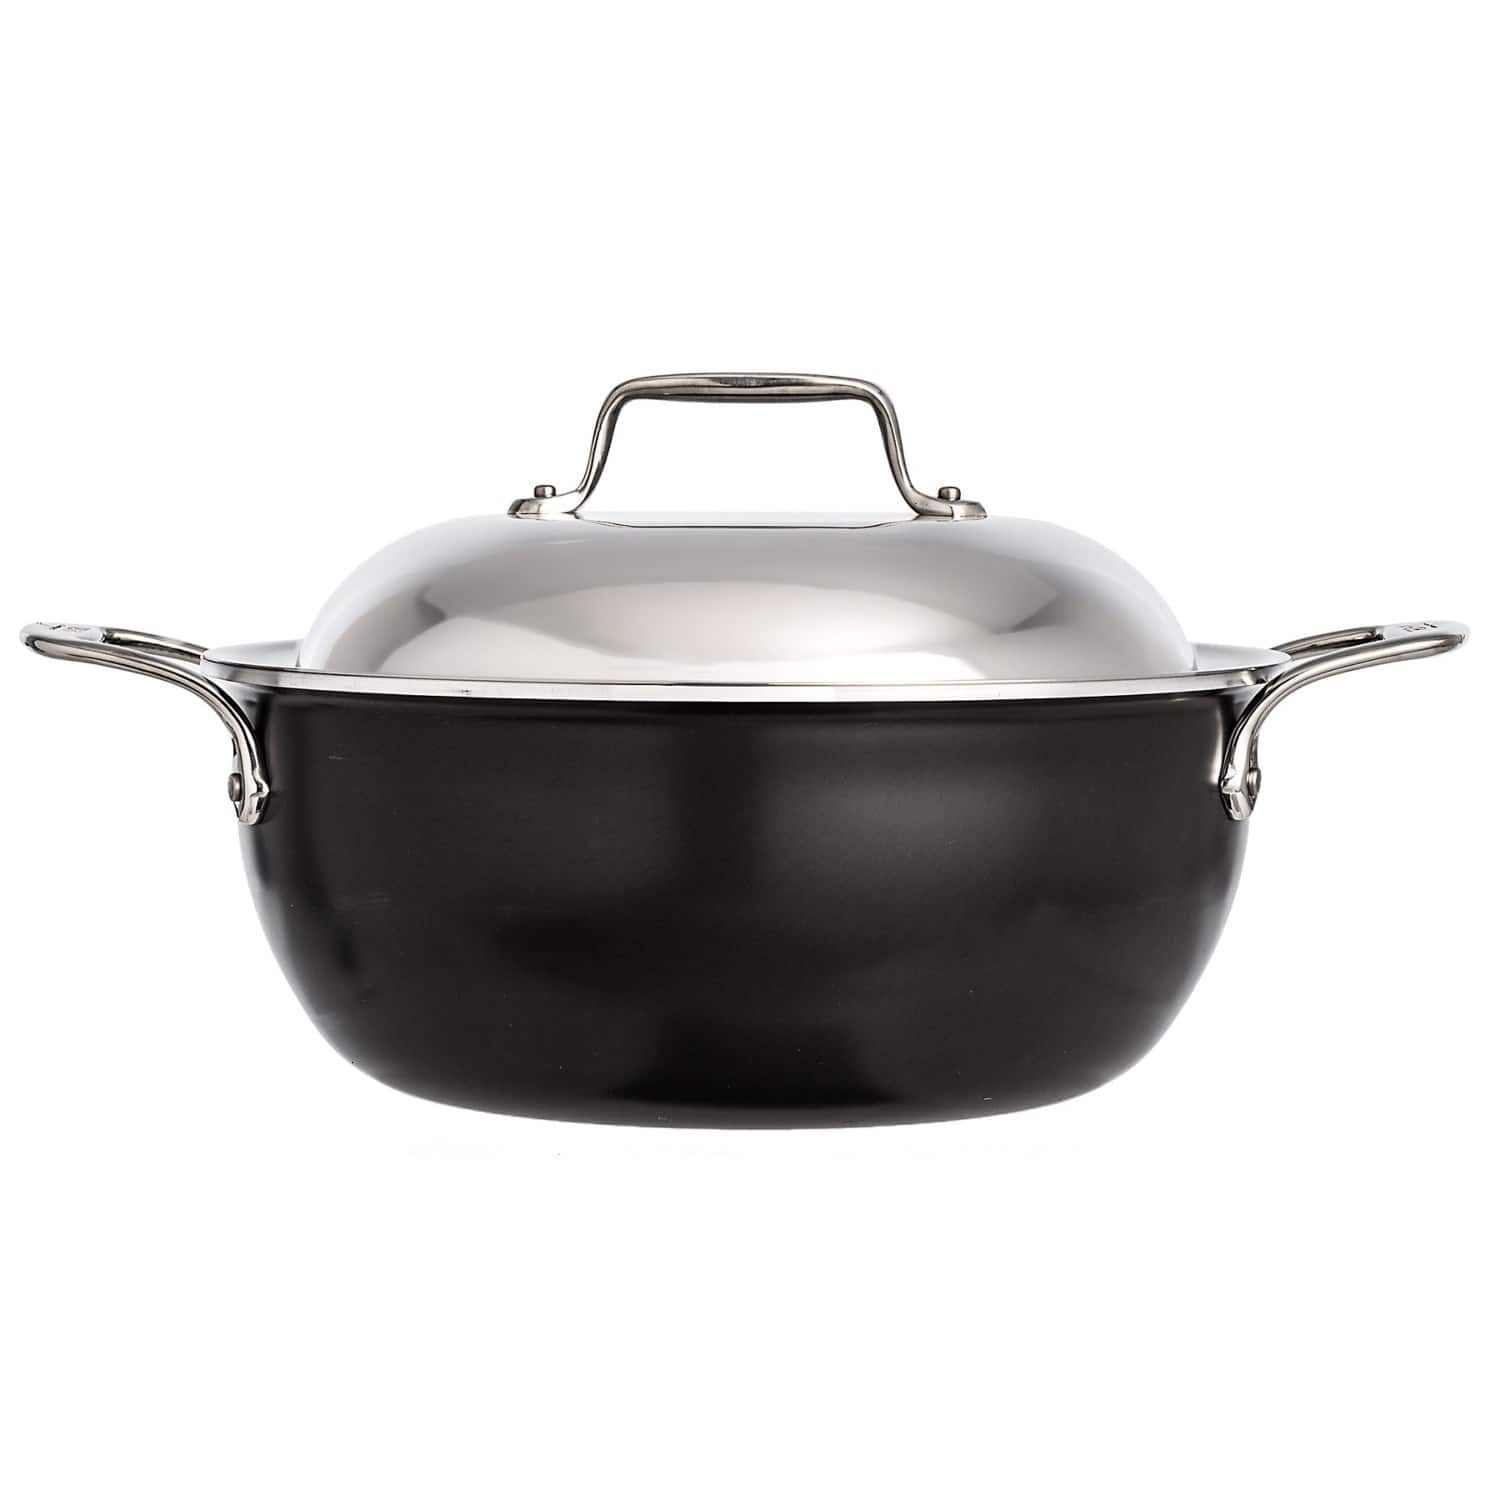 All-Clad Dutch Oven - 5.5 qt. , 98.00 with free shipping. $98 [dead]